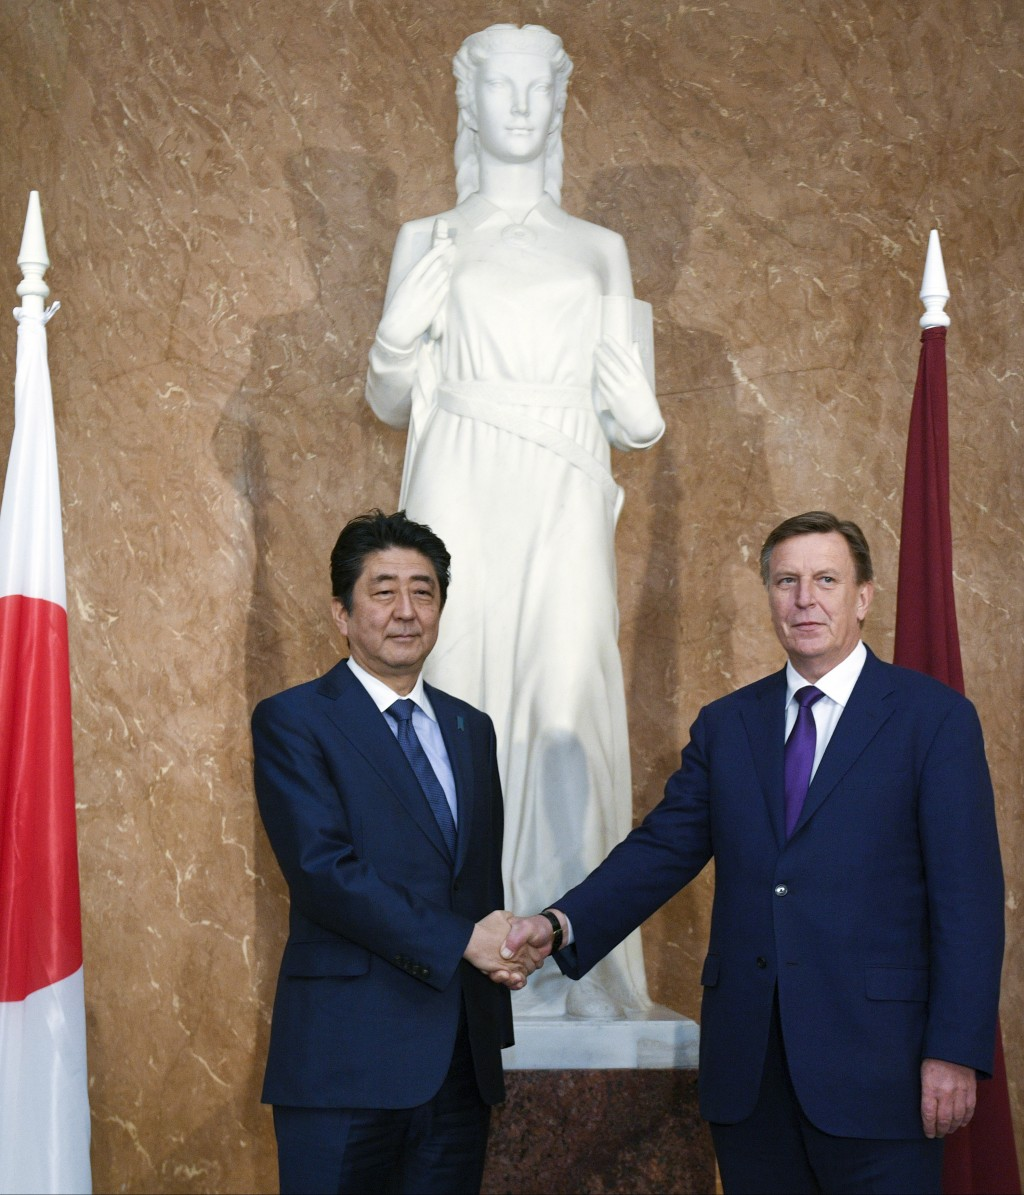 Japanese Prime Minister Shinzo Abe, left, and Latvian Prime Minister Maris Kucinskis shake hands as they pose for a photo prior to their talks in Riga